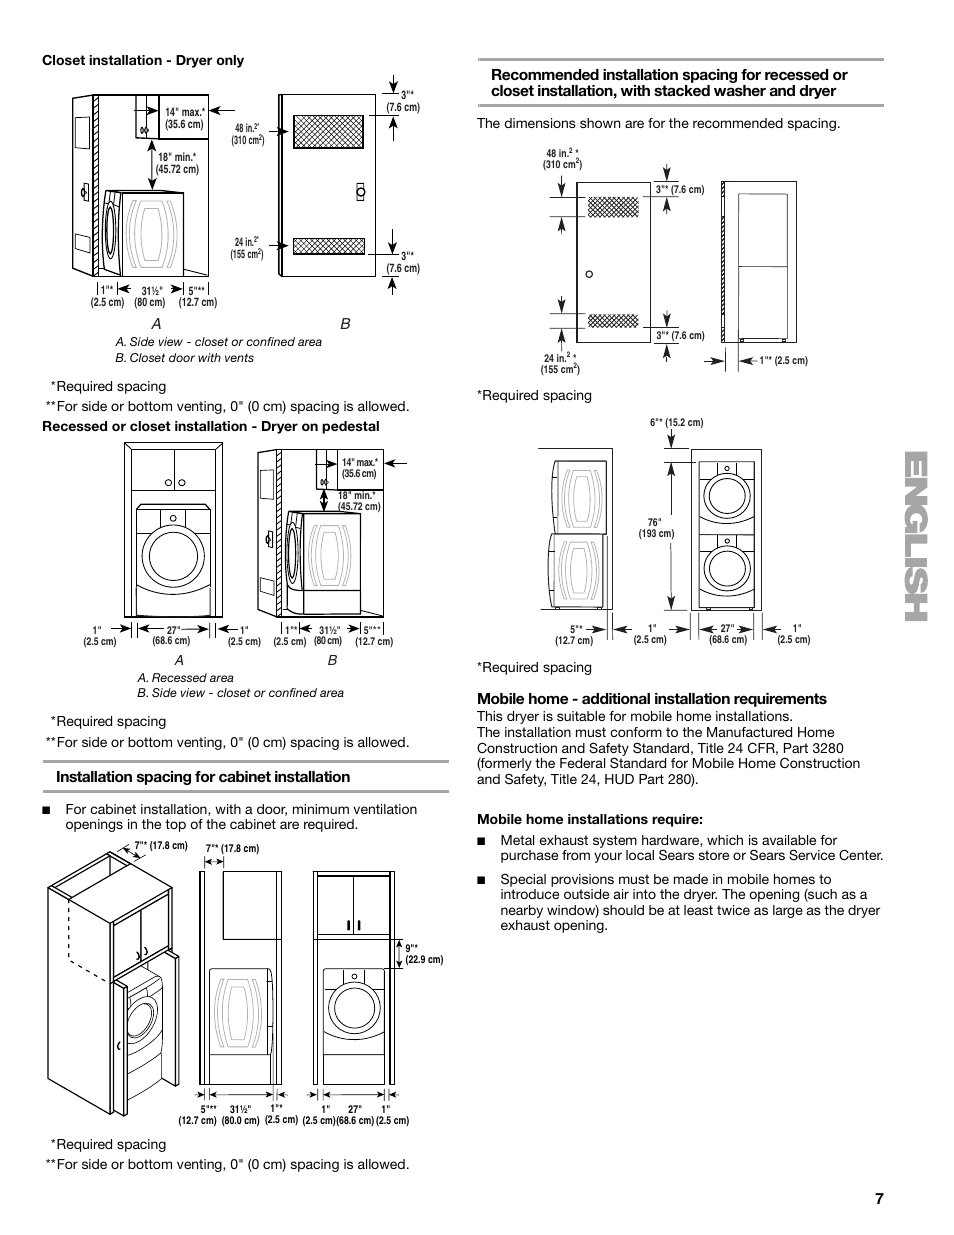 Kenmore 80 Series Dryer User Manual Wiring Diagram 41797912701 Installation Spacing For Cabinet Mobile Home Additional Requirements Elite He3